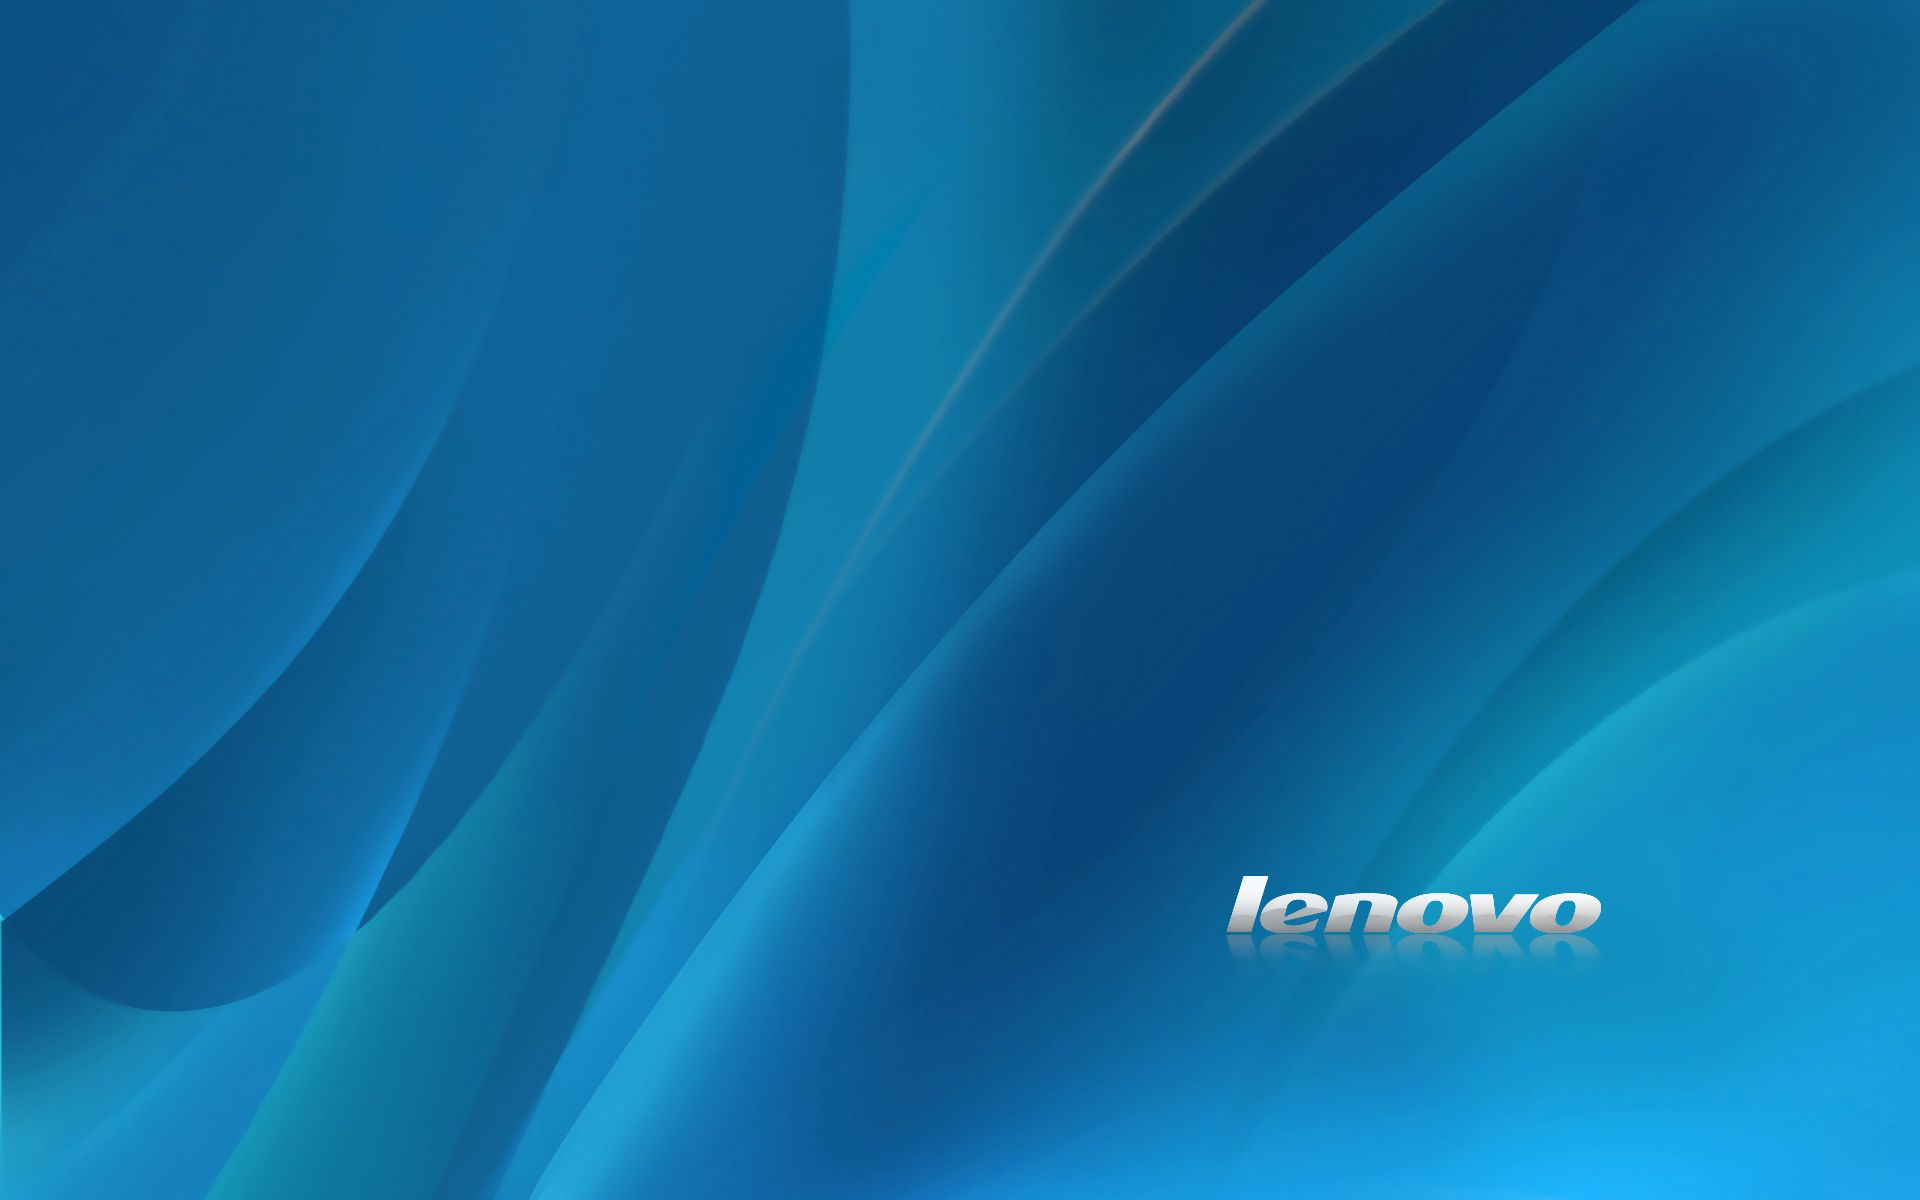 Lenovo wallpaper collection in hd for download wallpapers pinterest lenovo wallpaper collection in hd for download voltagebd Image collections